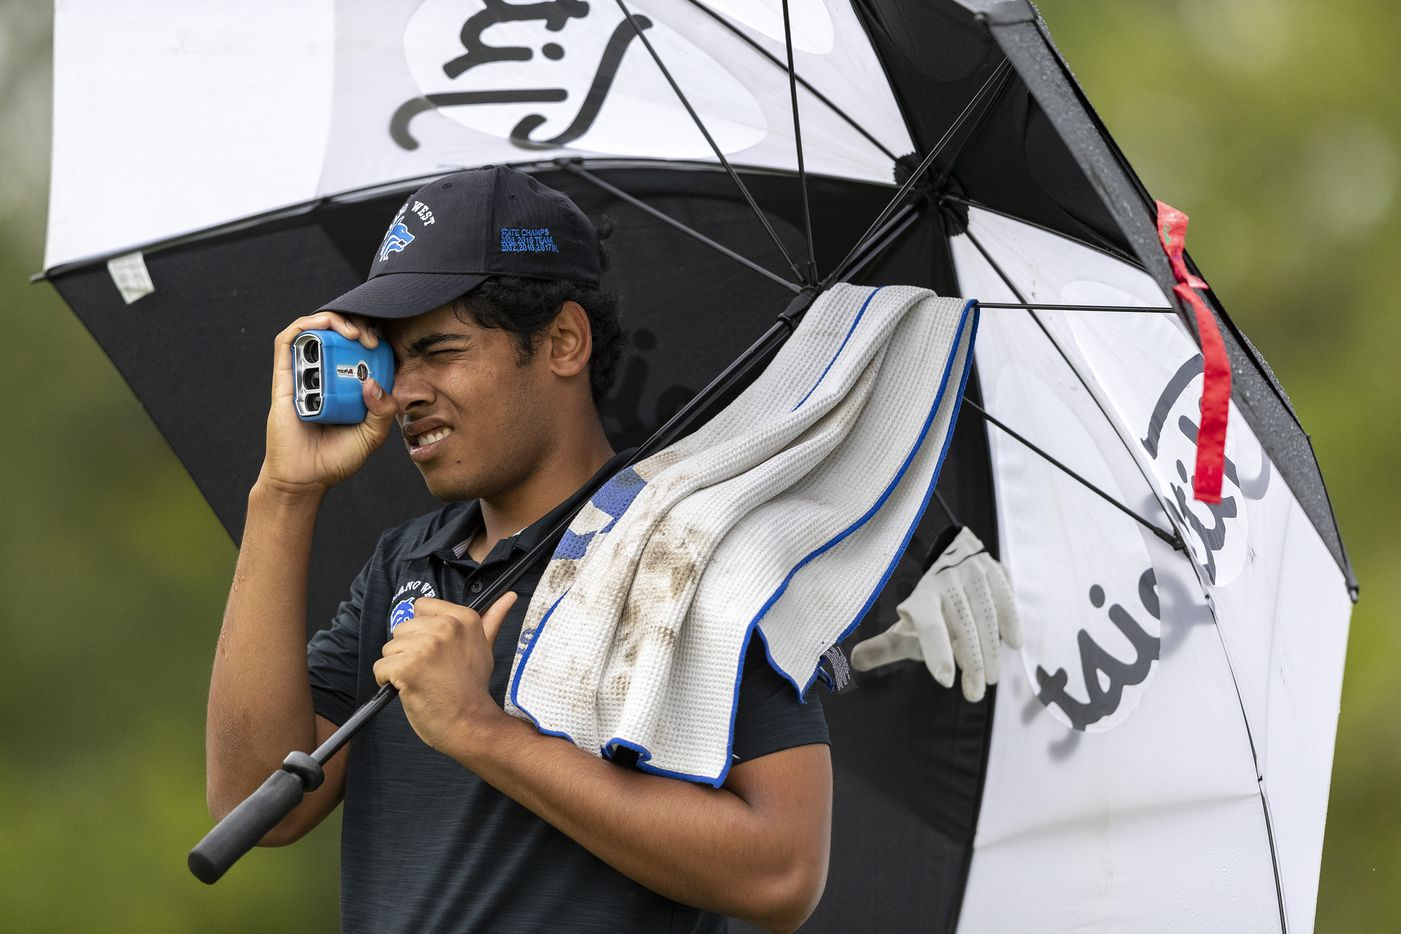 Plano WestÕs Rohan Aerrabolu studies his shot from the 5th tee box during the final round of the UIL Class 6A boys golf tournament in Georgetown, Tuesday, May 18, 2021. (Stephen Spillman/Special Contributor)